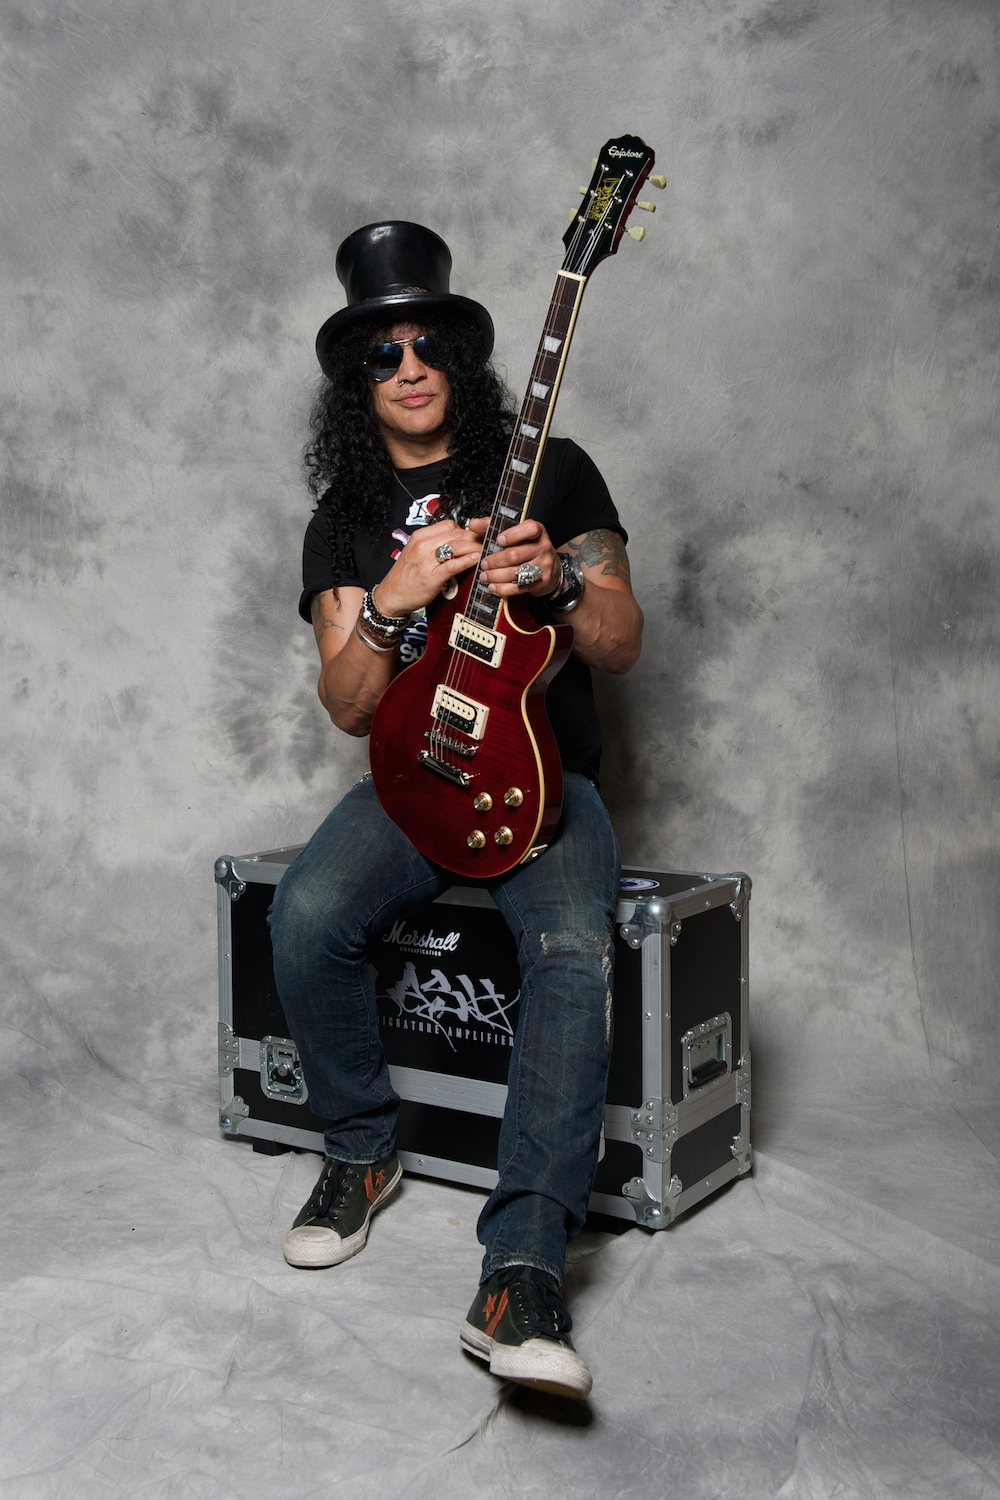 epiphone limited edition slash signature 39 rosso corsa 39 les paul standard outfit. Black Bedroom Furniture Sets. Home Design Ideas